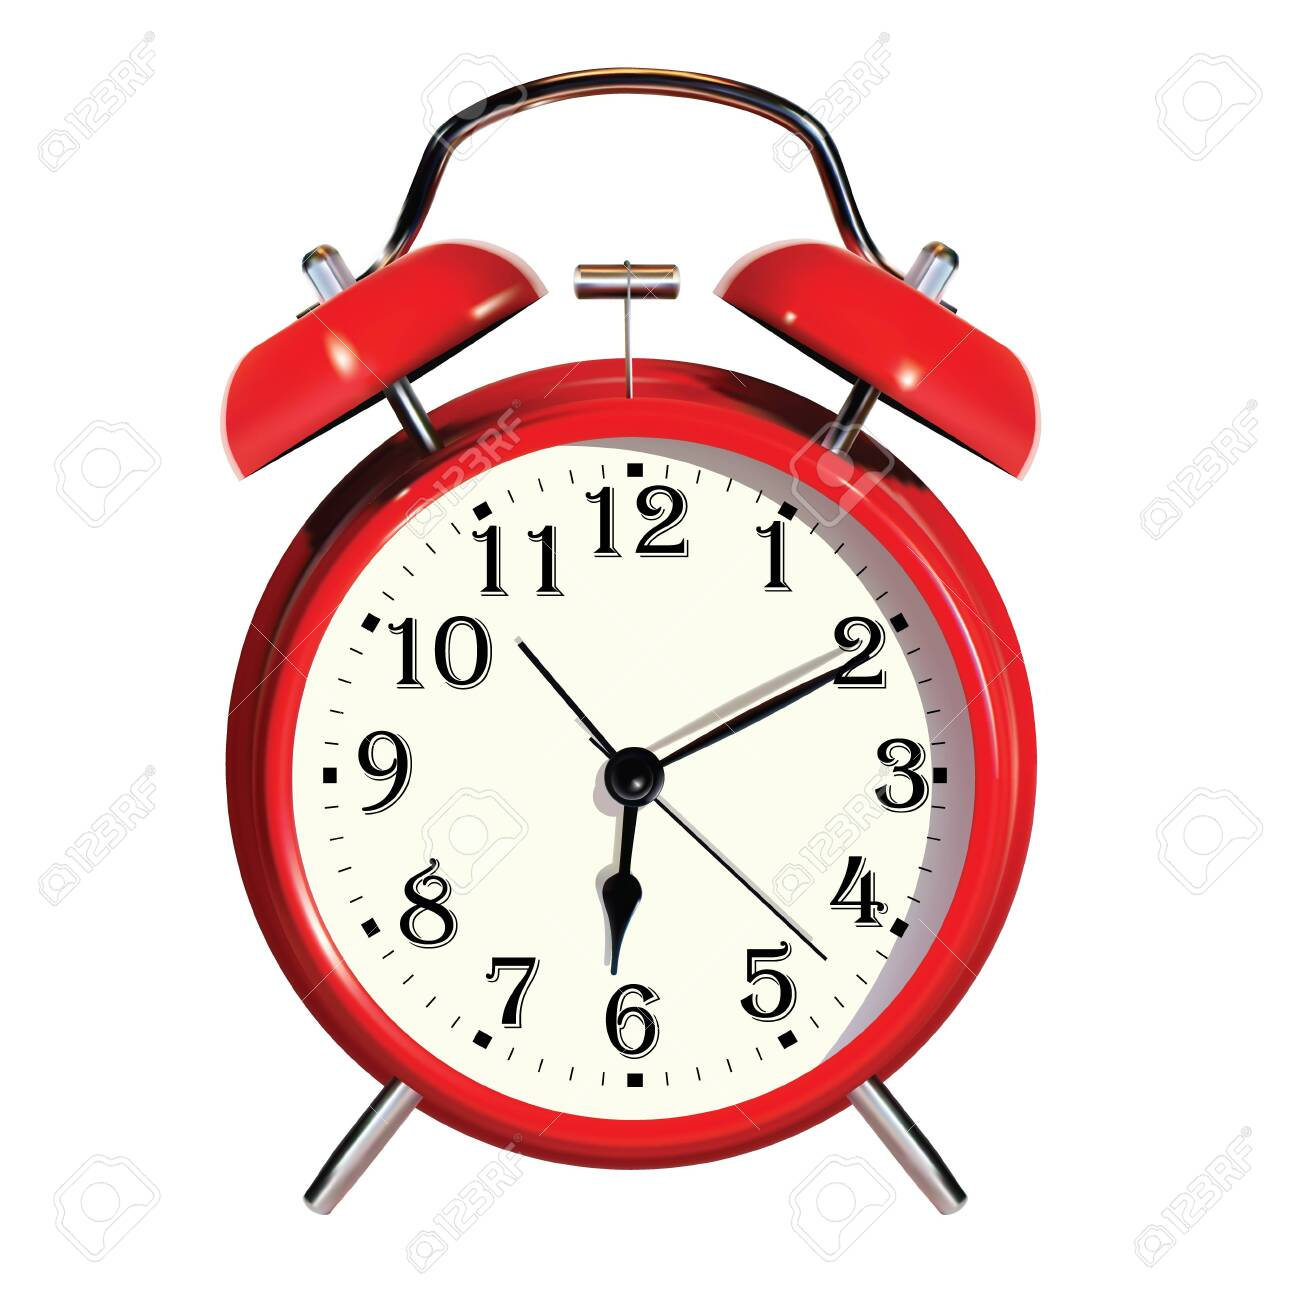 Realistic vector alarm clock. Isolated on white background. - 147940096